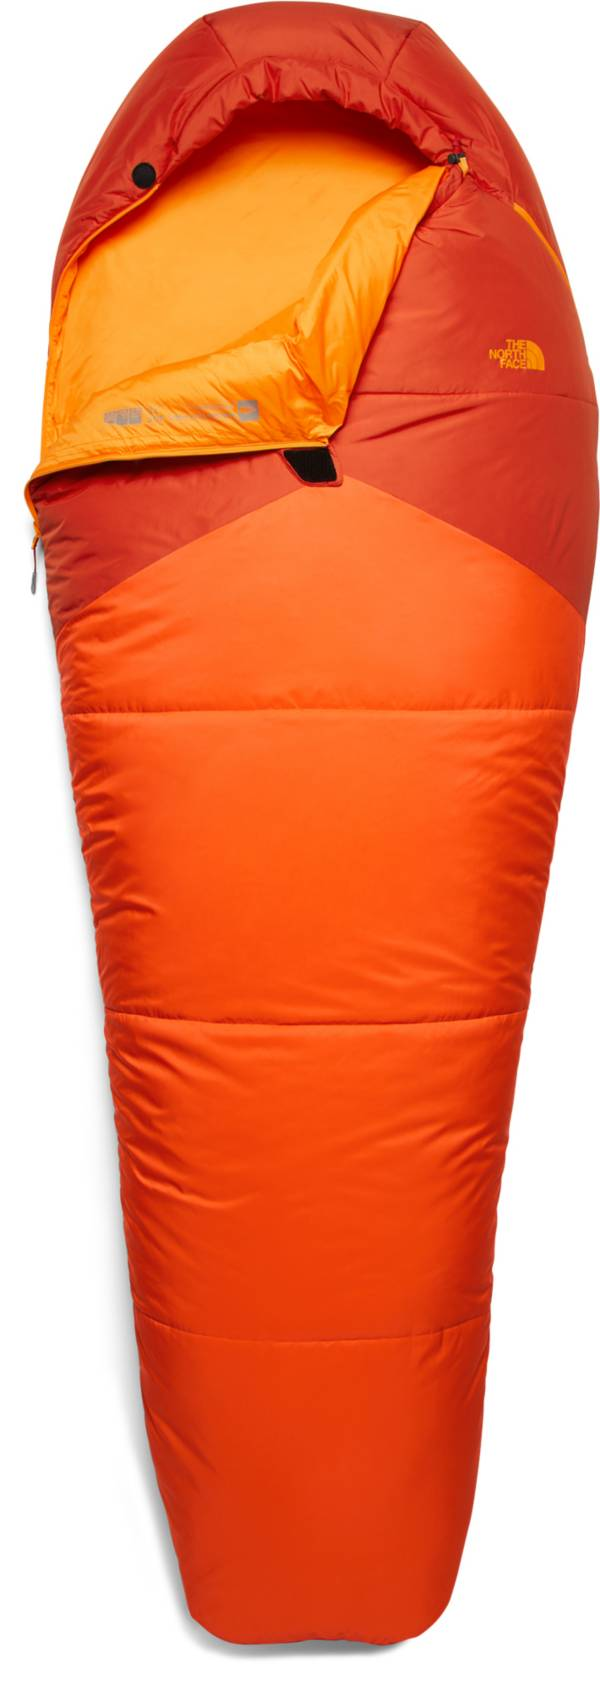 North Face Wasatch Pro 40°F Sleeping Bag product image